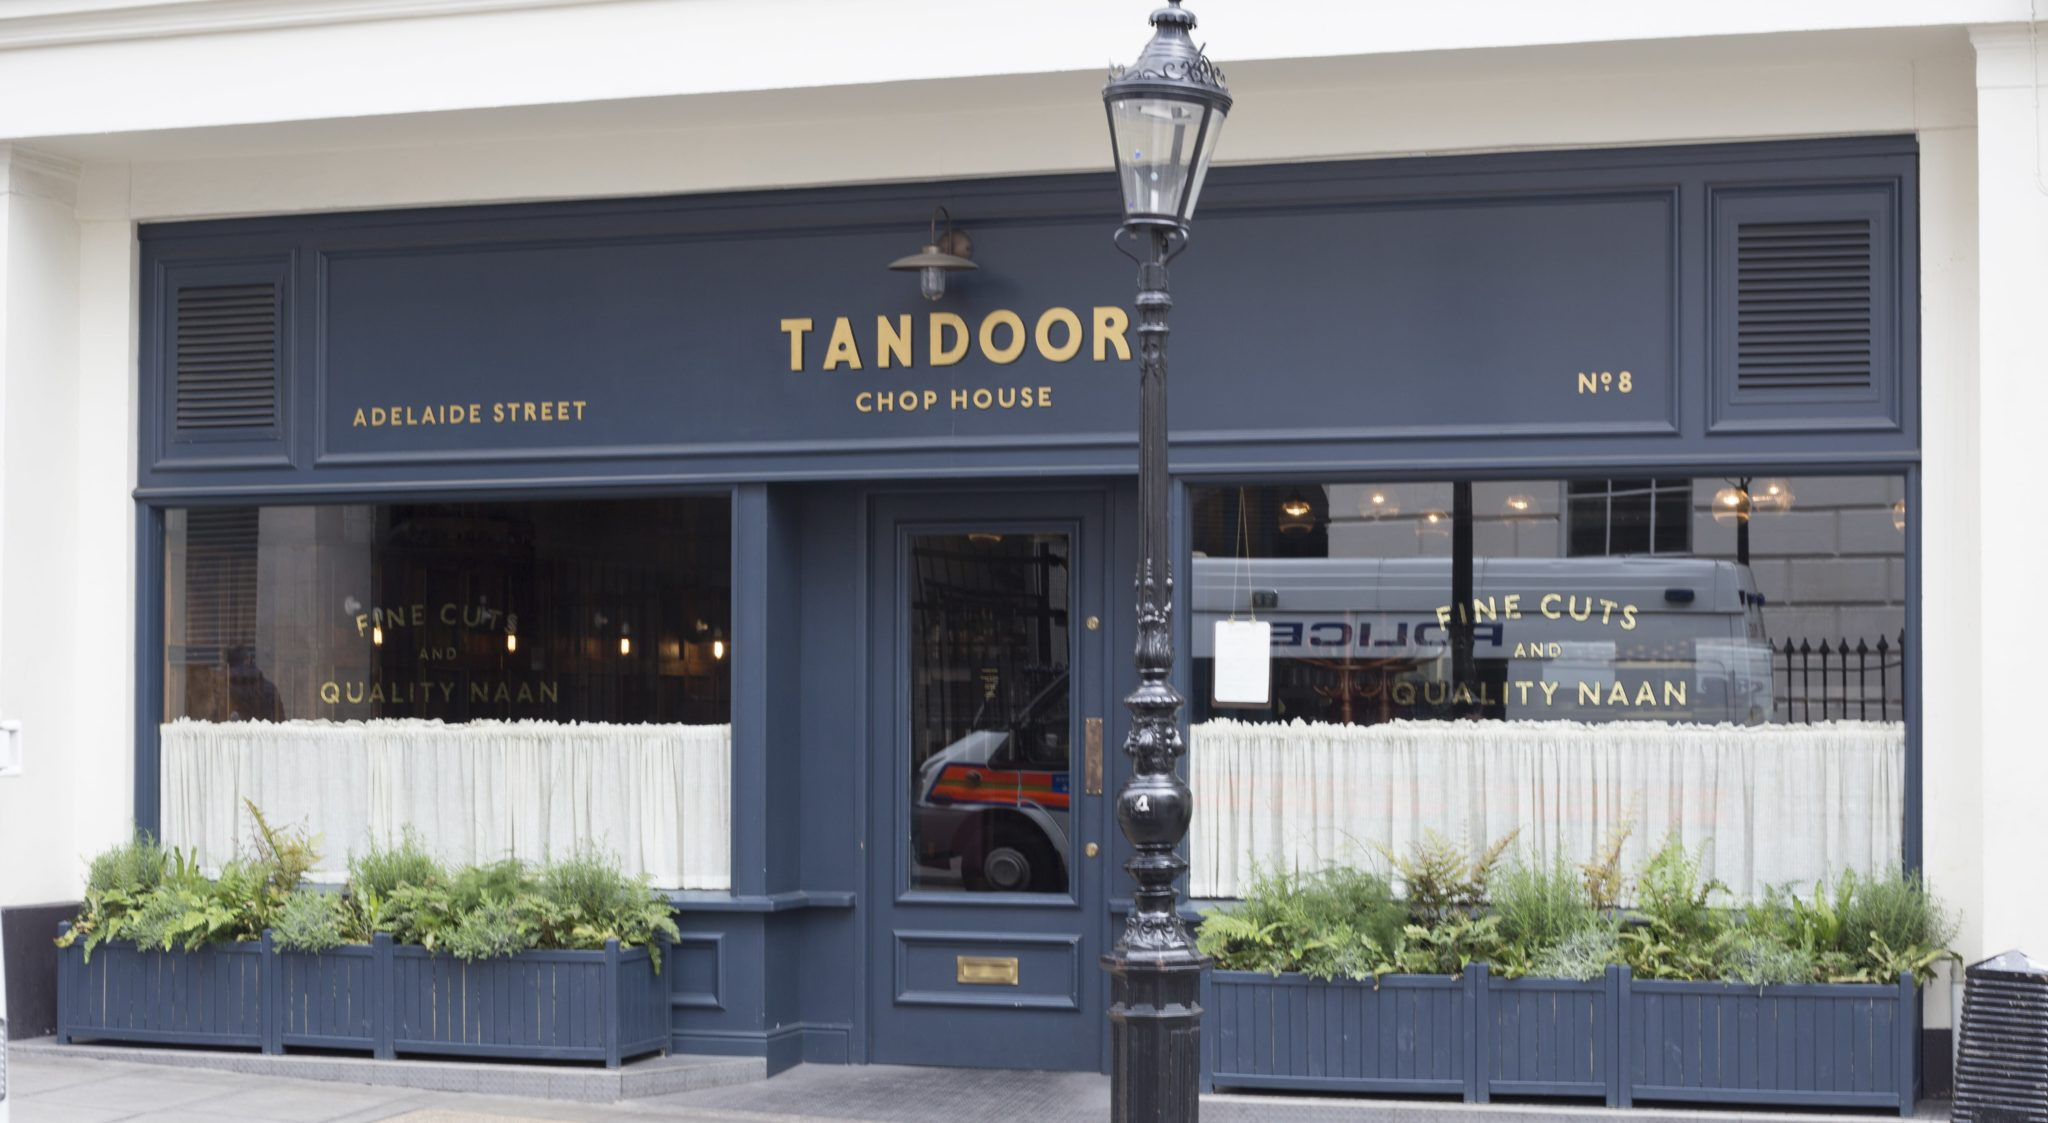 Tandoor Chop House finediningindian visit april 16th_1-min